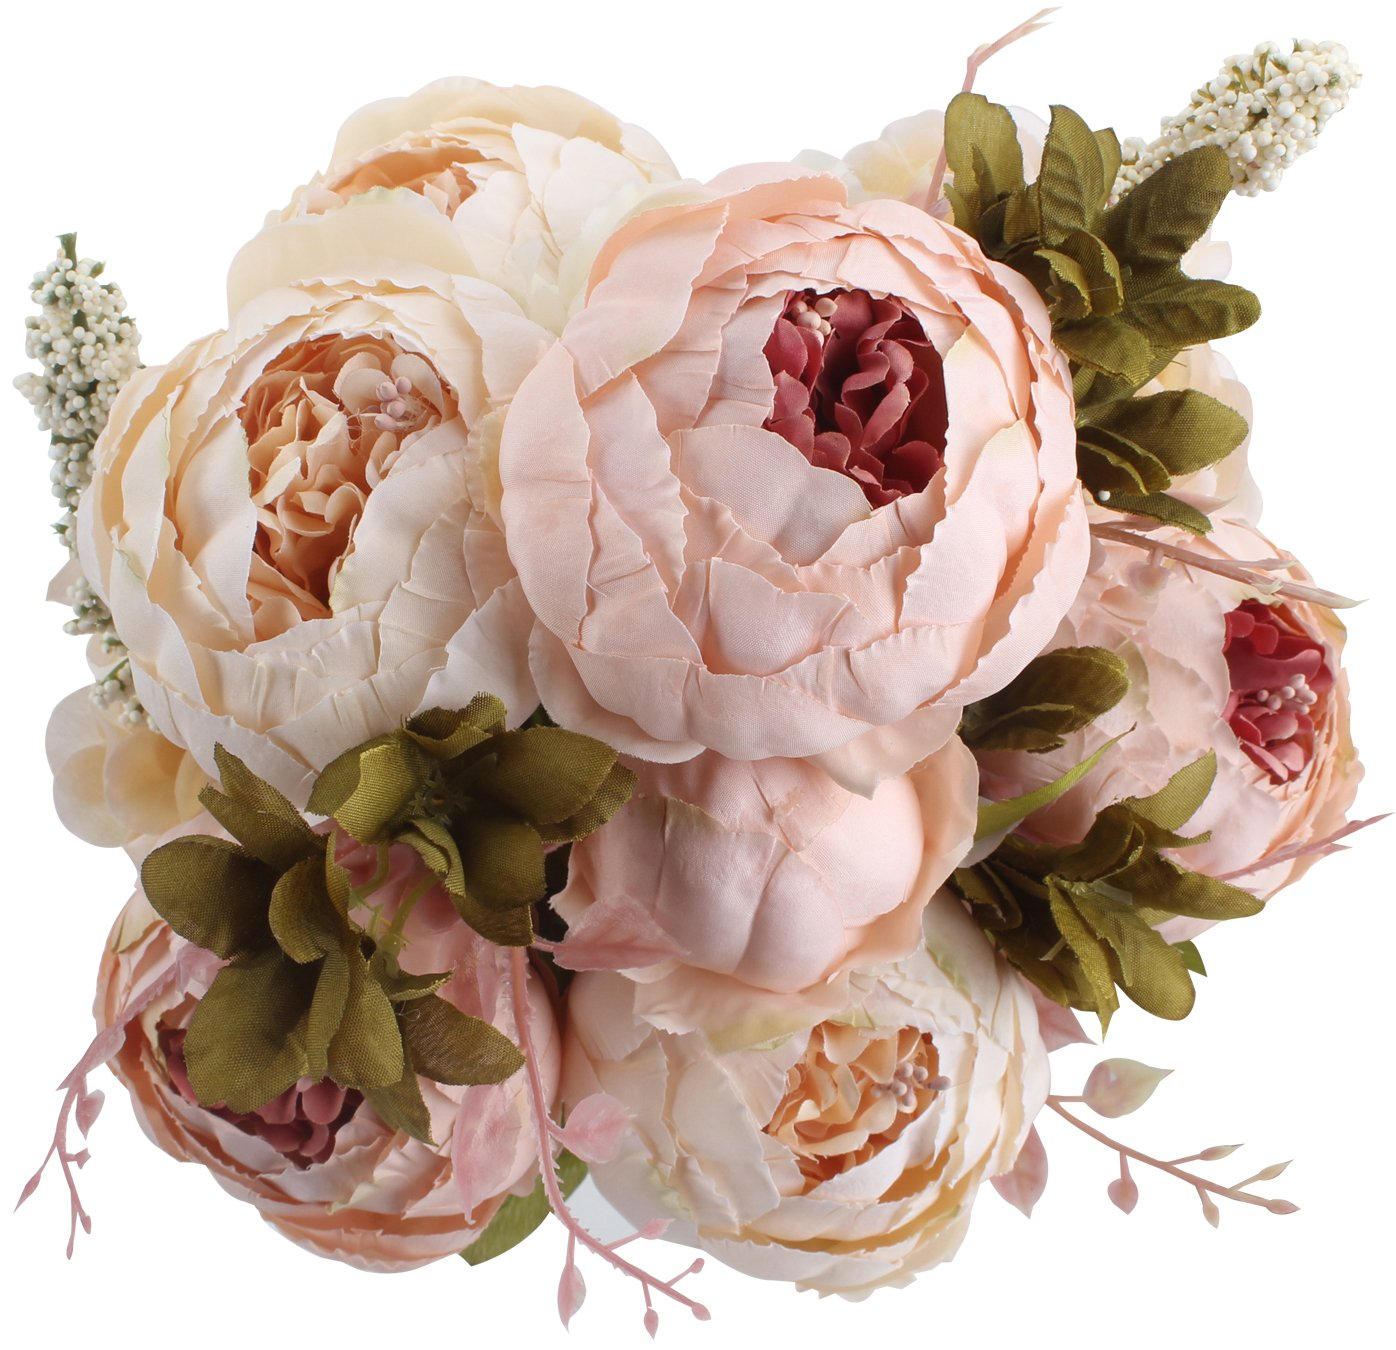 Amazon duovlo fake flowers vintage artificial peony silk amazon duovlo fake flowers vintage artificial peony silk flowers wedding home decorationpack of 1 light pink home kitchen dhlflorist Images